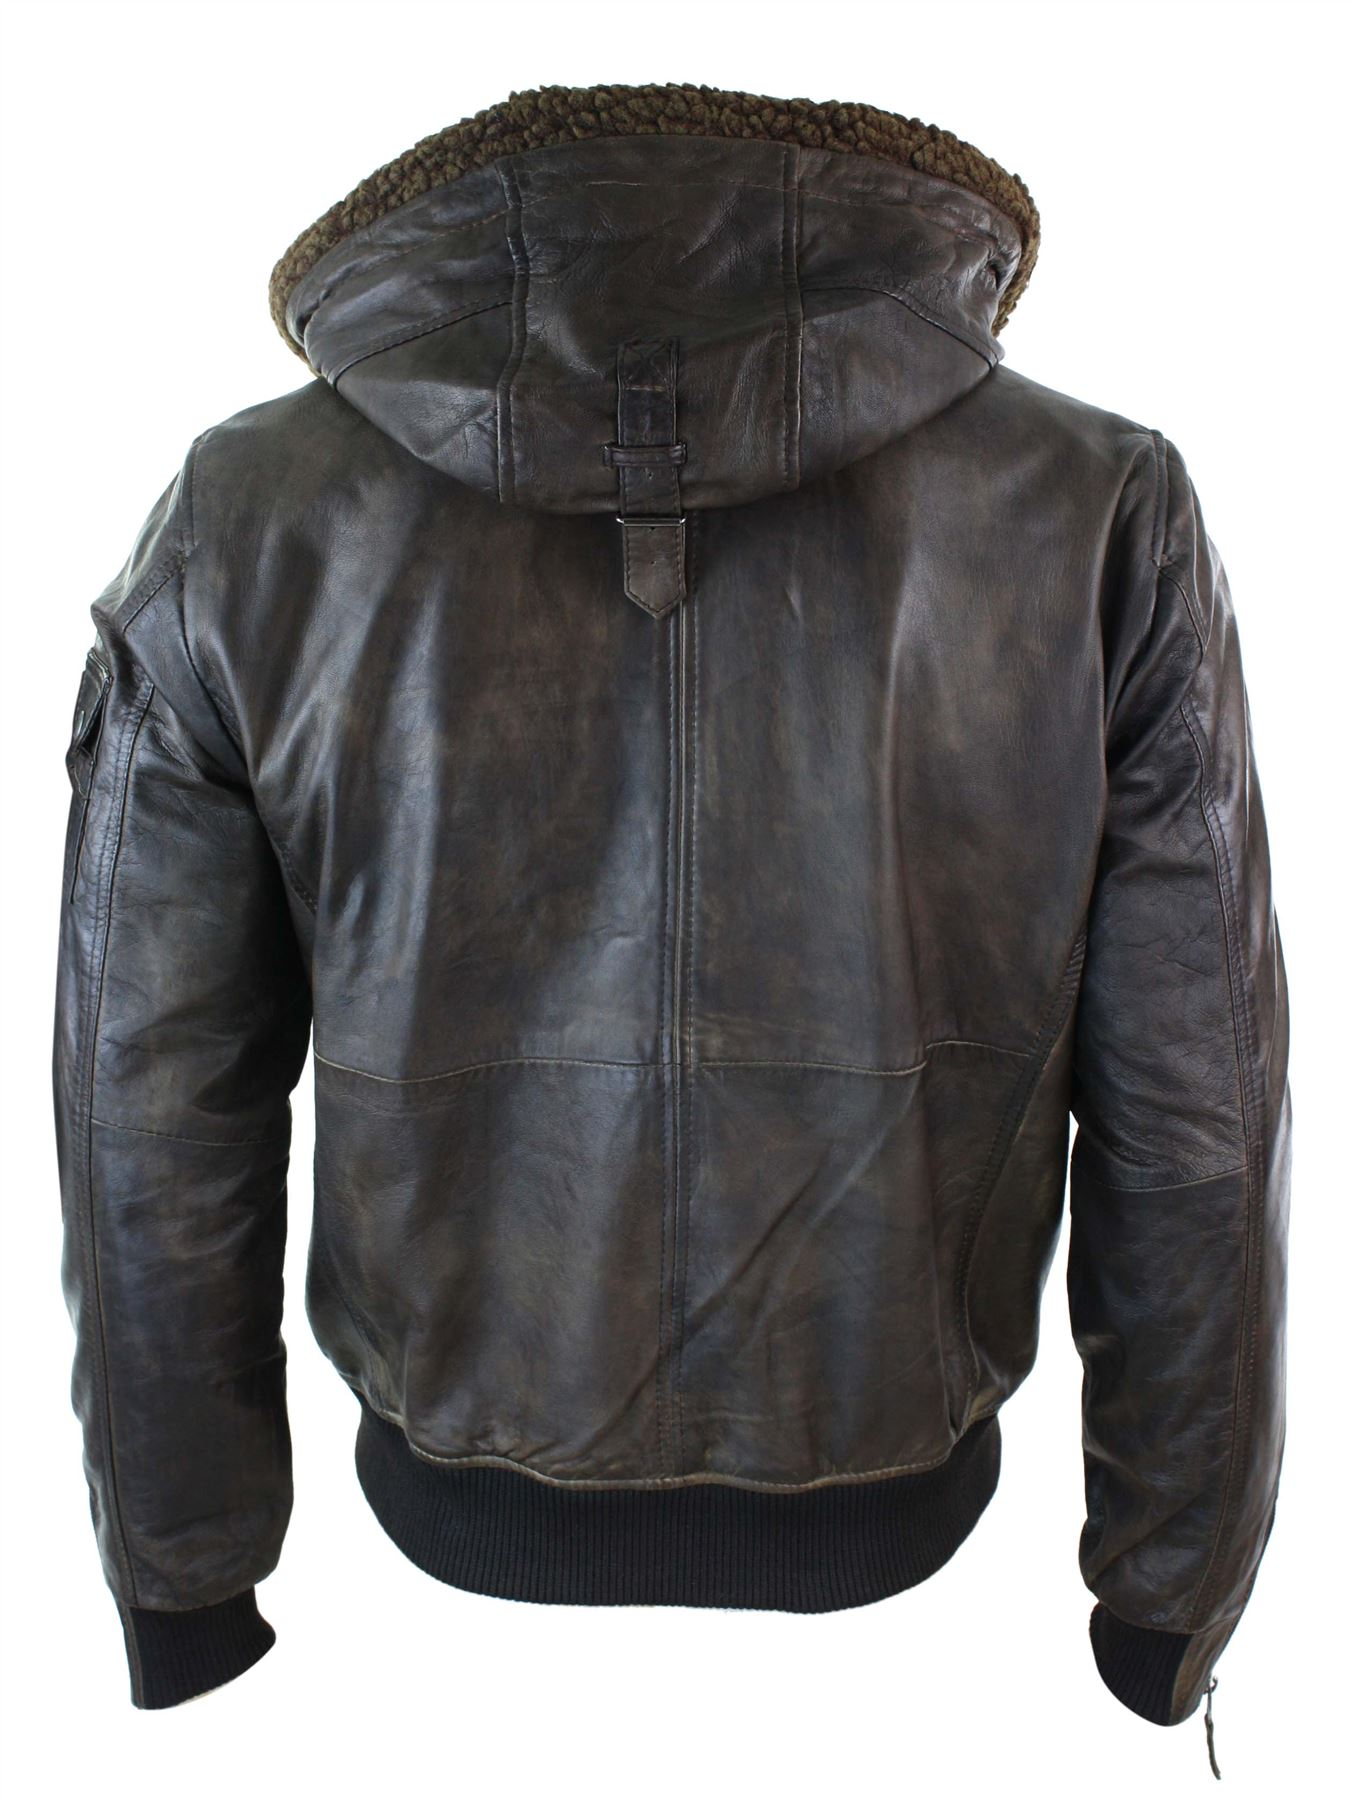 Mens brown leather jacket with hood